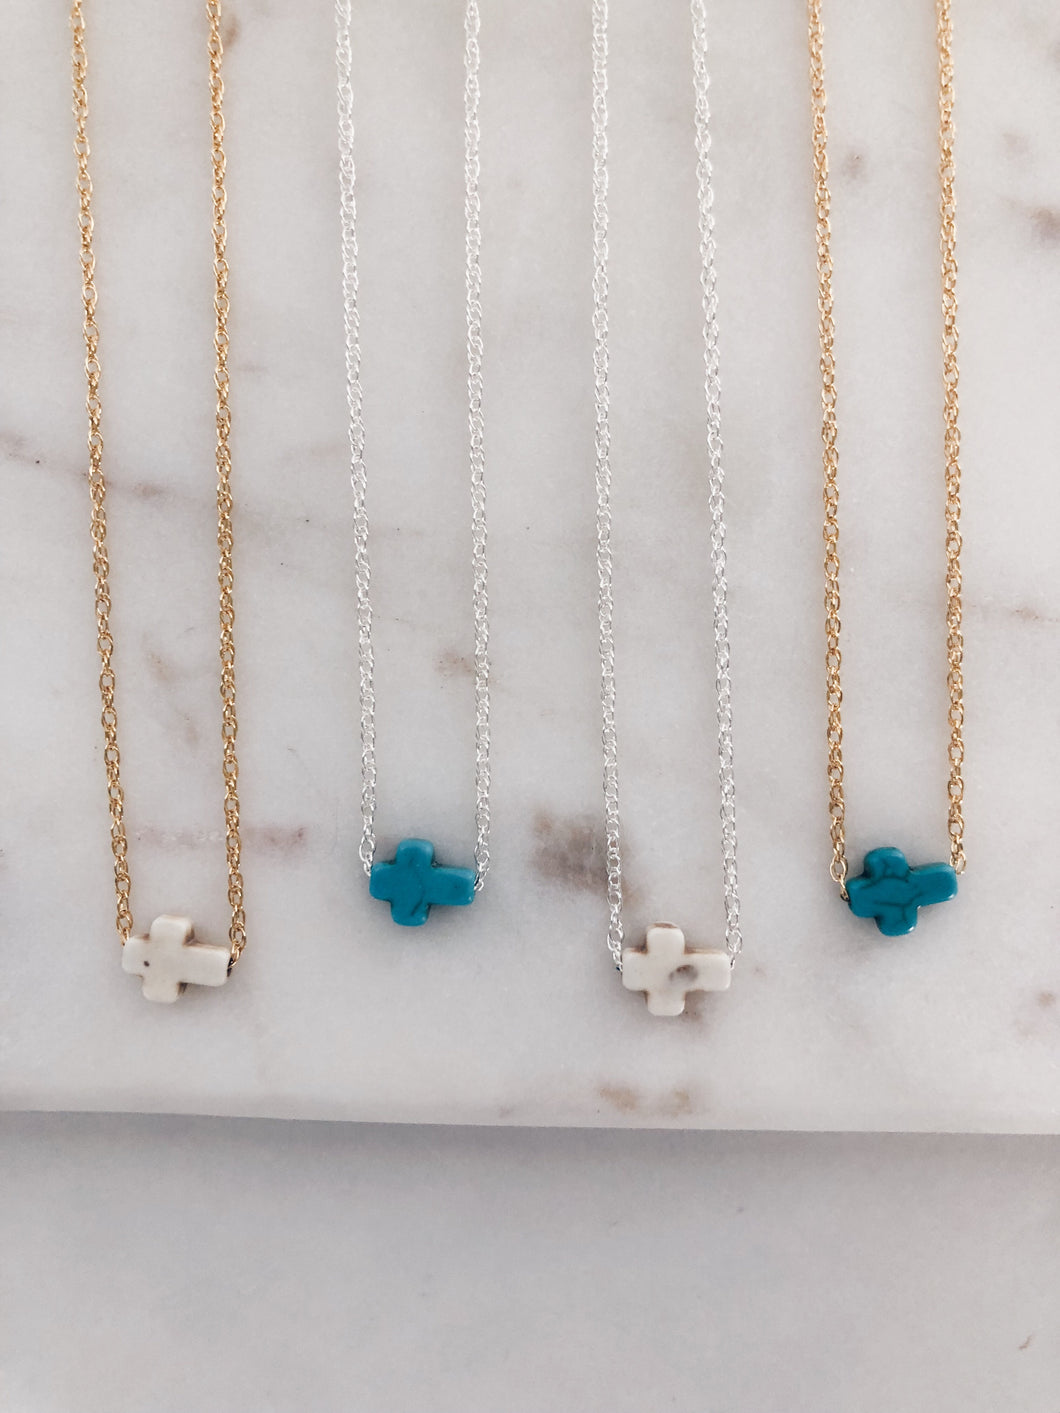 Mini Turquoise Cross Necklace